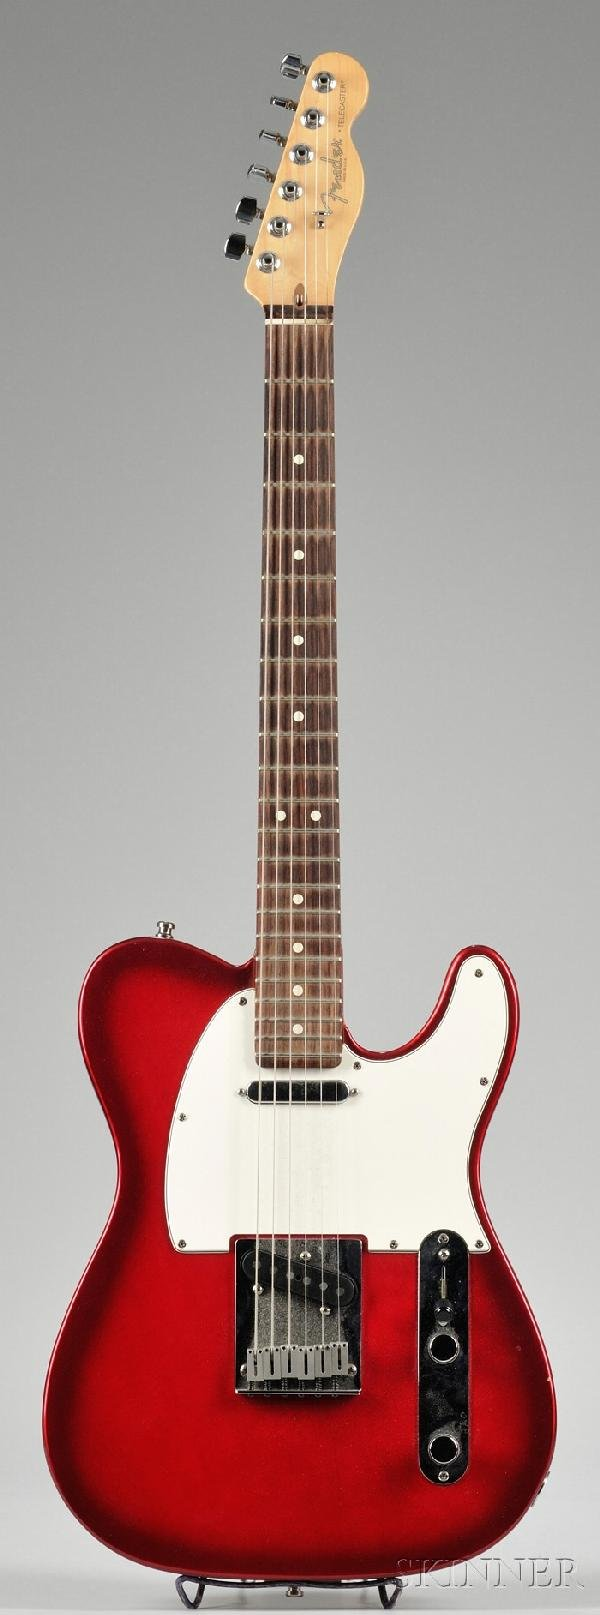 19: American Electric Guitar, Fender Musical Instrument